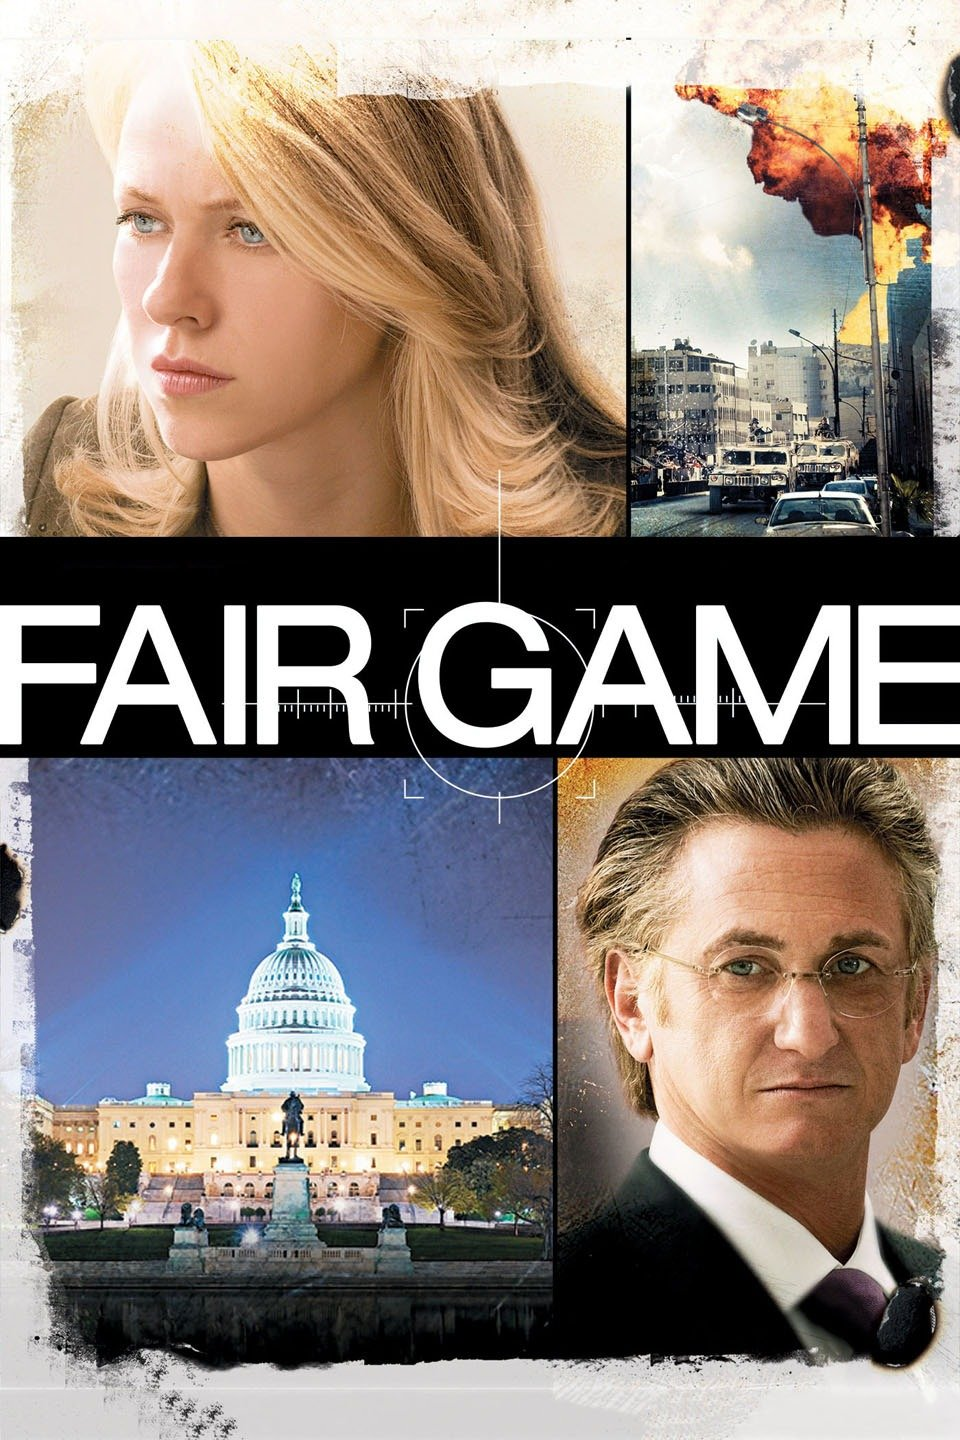 Fair Game 2010 Full Movie Download BluRay 720p 760MB